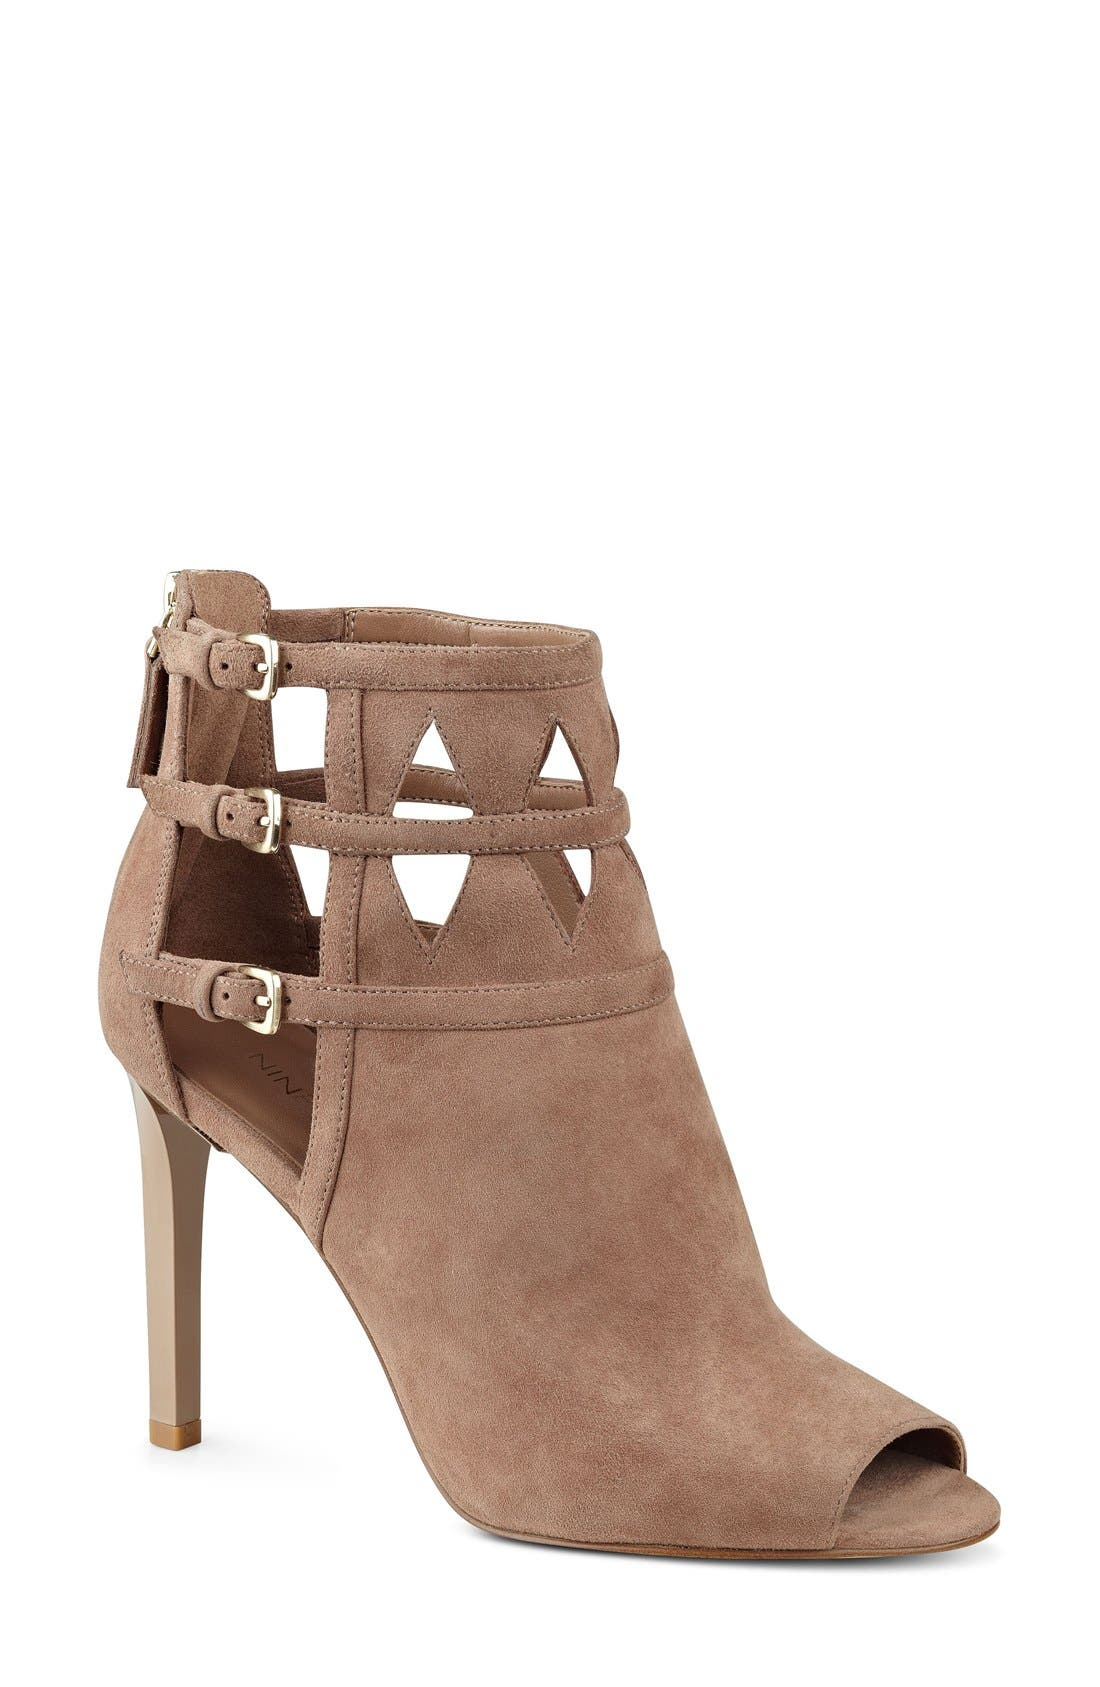 Alternate Image 1 Selected - Nine West 'Laulani' Cutout Peep Toe Bootie (Women)